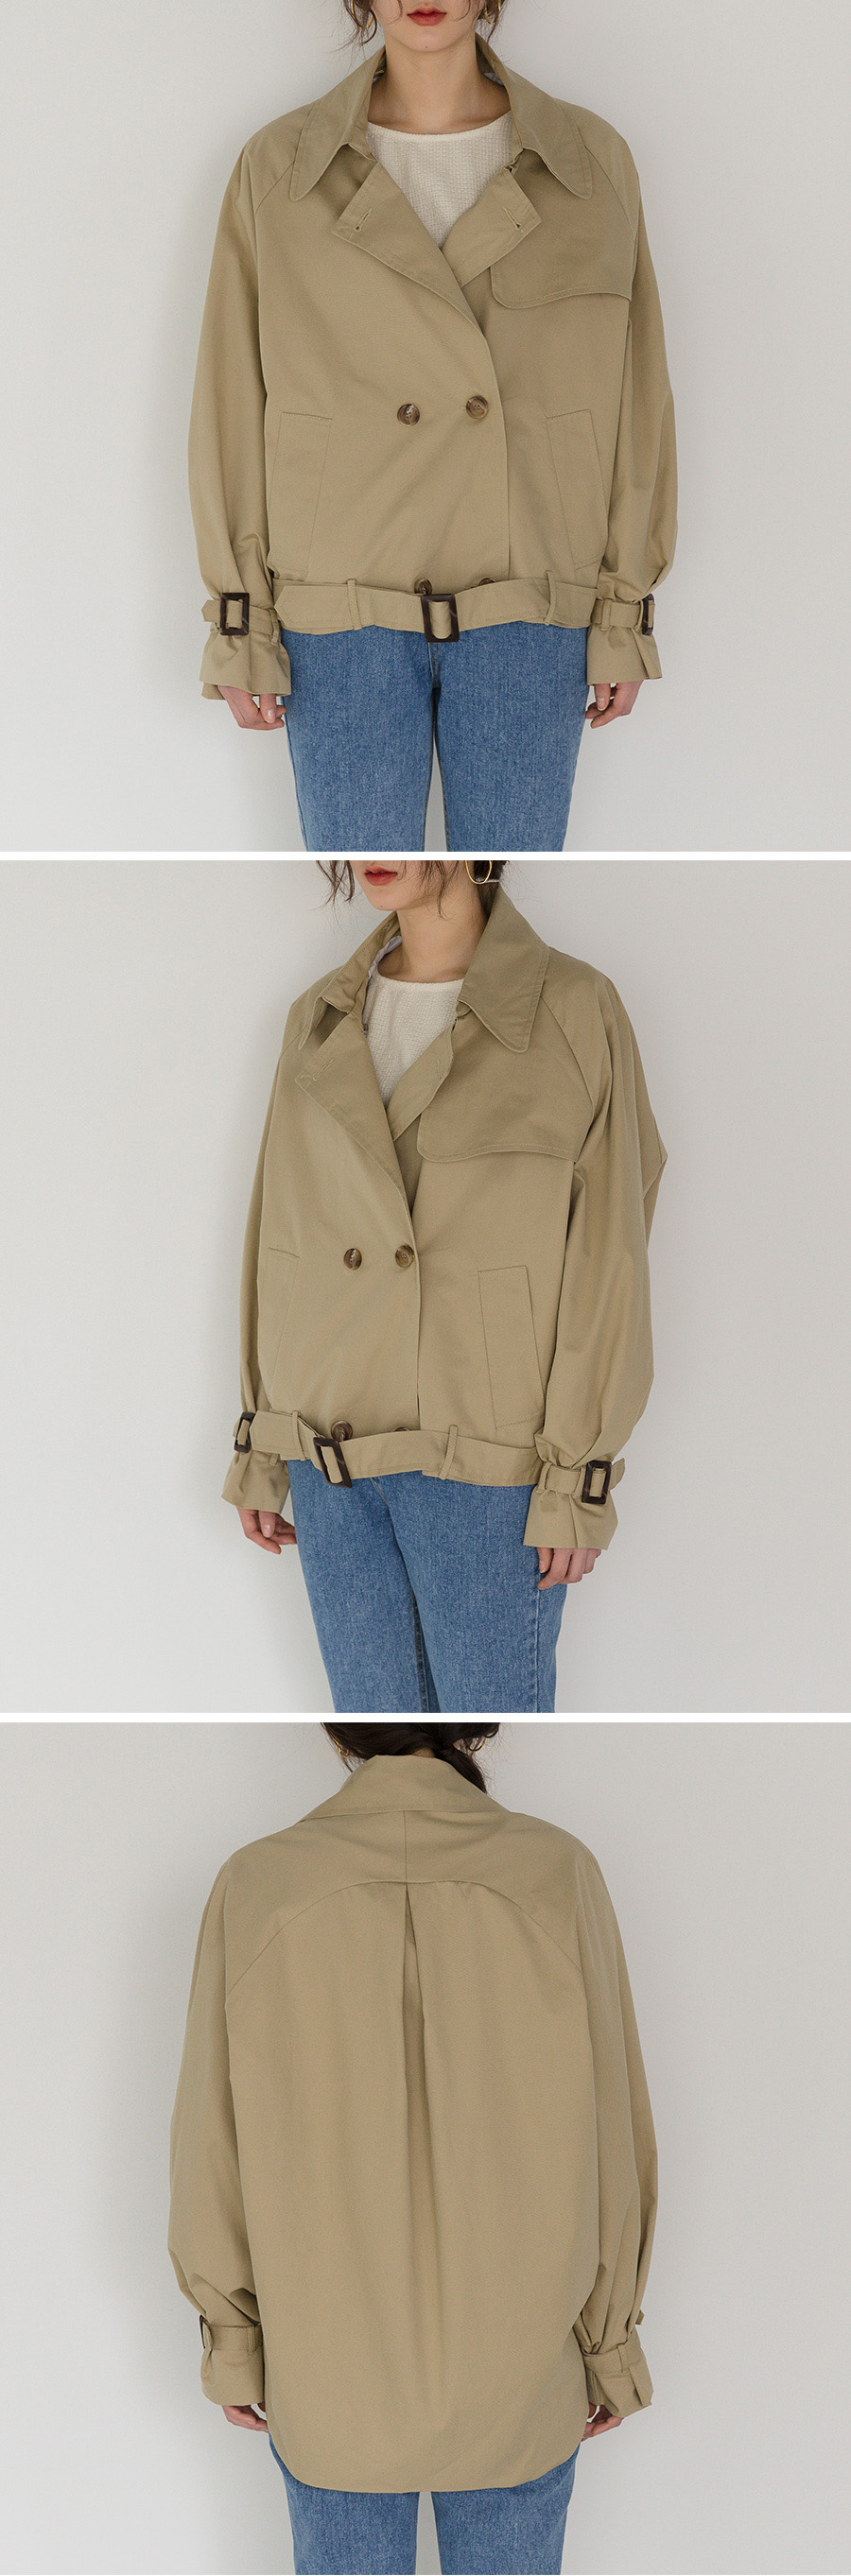 batwing sleeve trench jacket